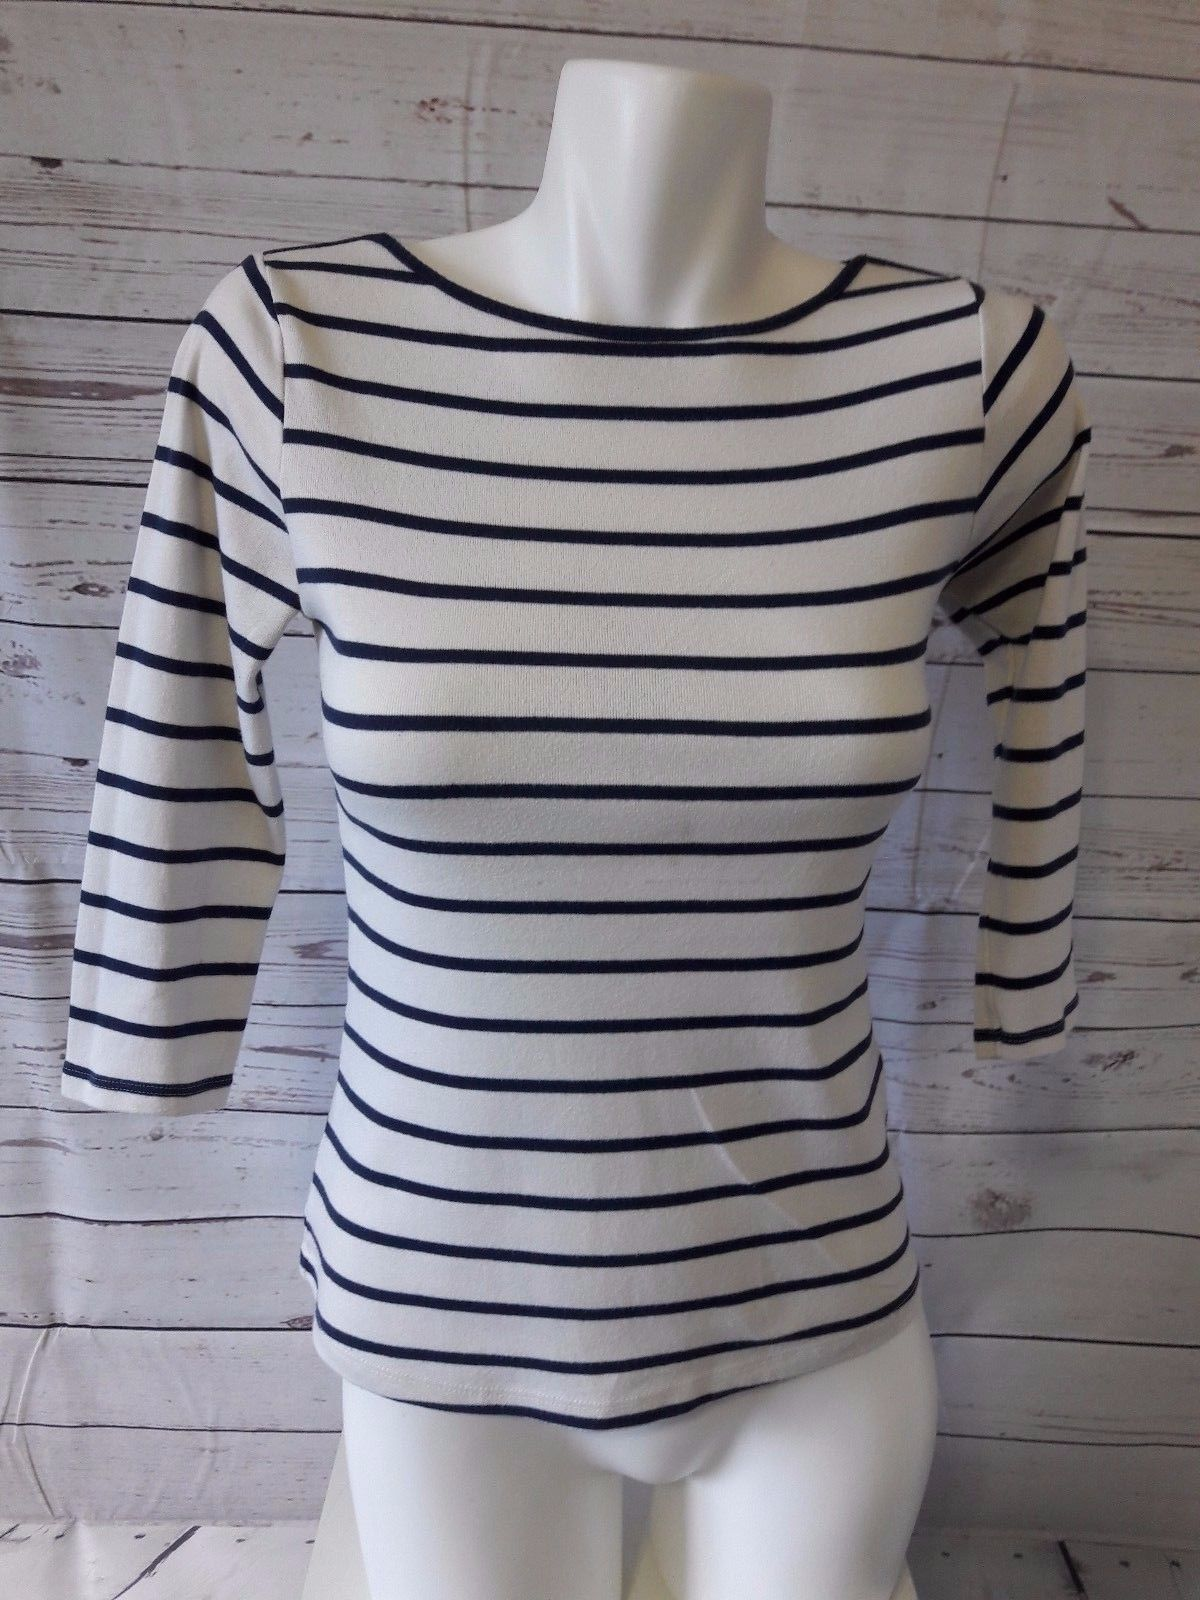 d58f870cbf 10.55   Zara W&B Collection Thin Knit Sweater Top Shirt White with Blue  Striped SMALL ❤ #collection #sweater #striped #Leggings #Runway #tshirt  #cool #Punk ...